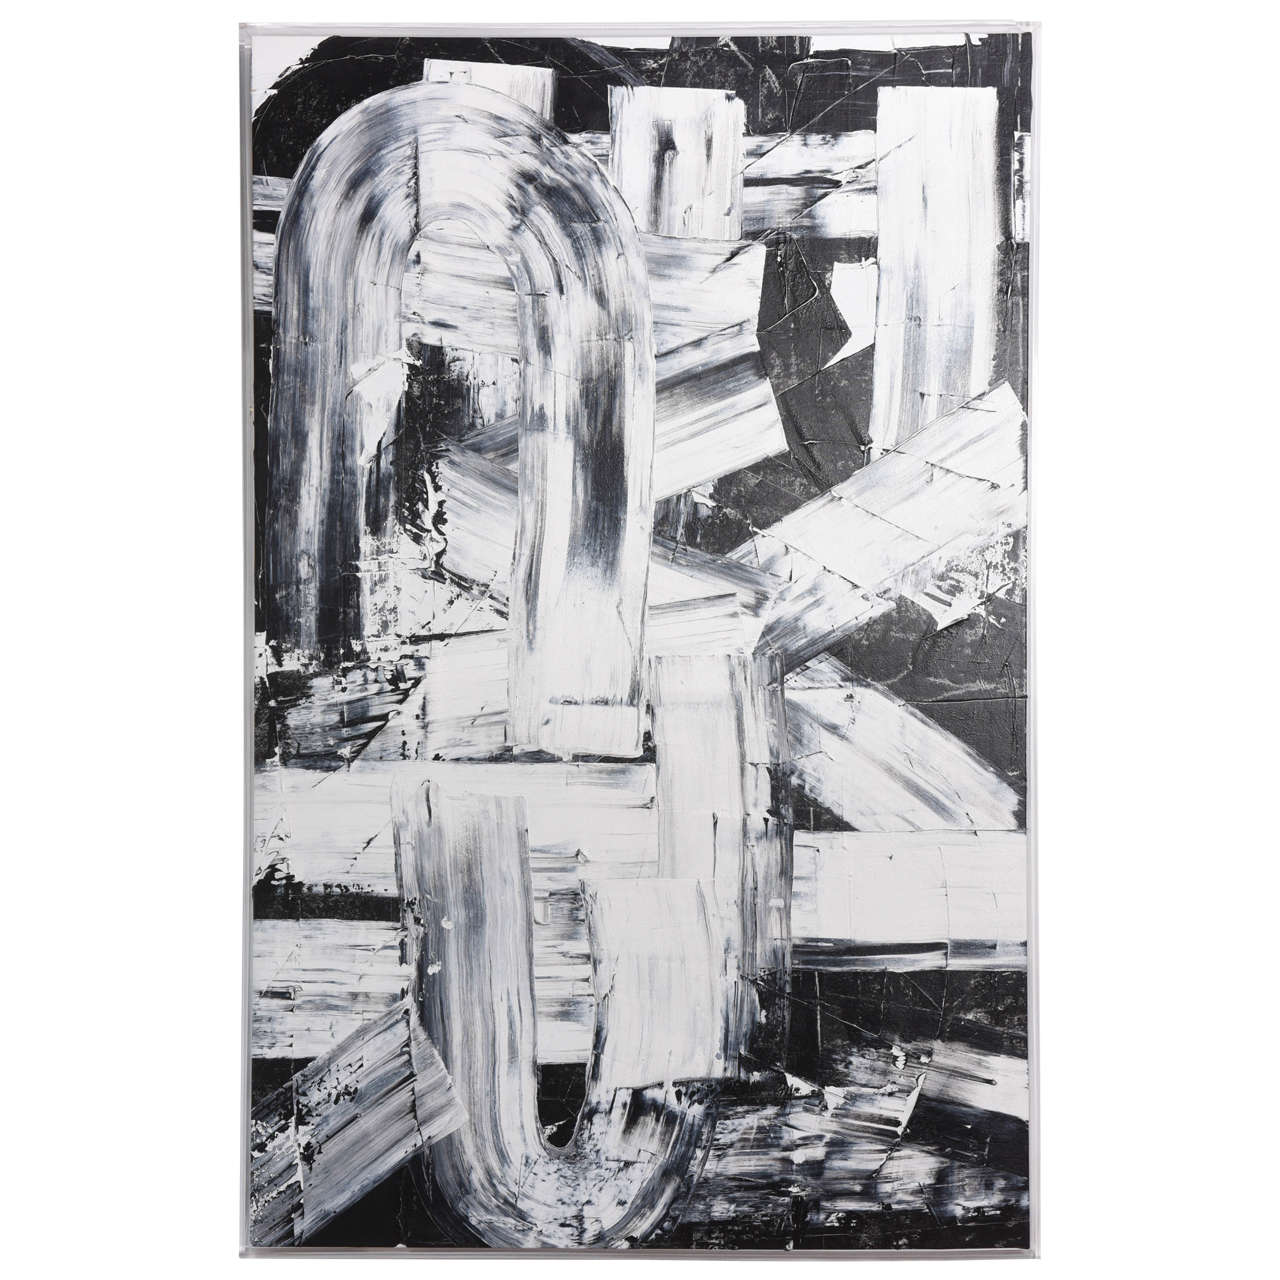 Renato Freitas Original Oil on Canvas, 2015, Black and White 2 For Sale